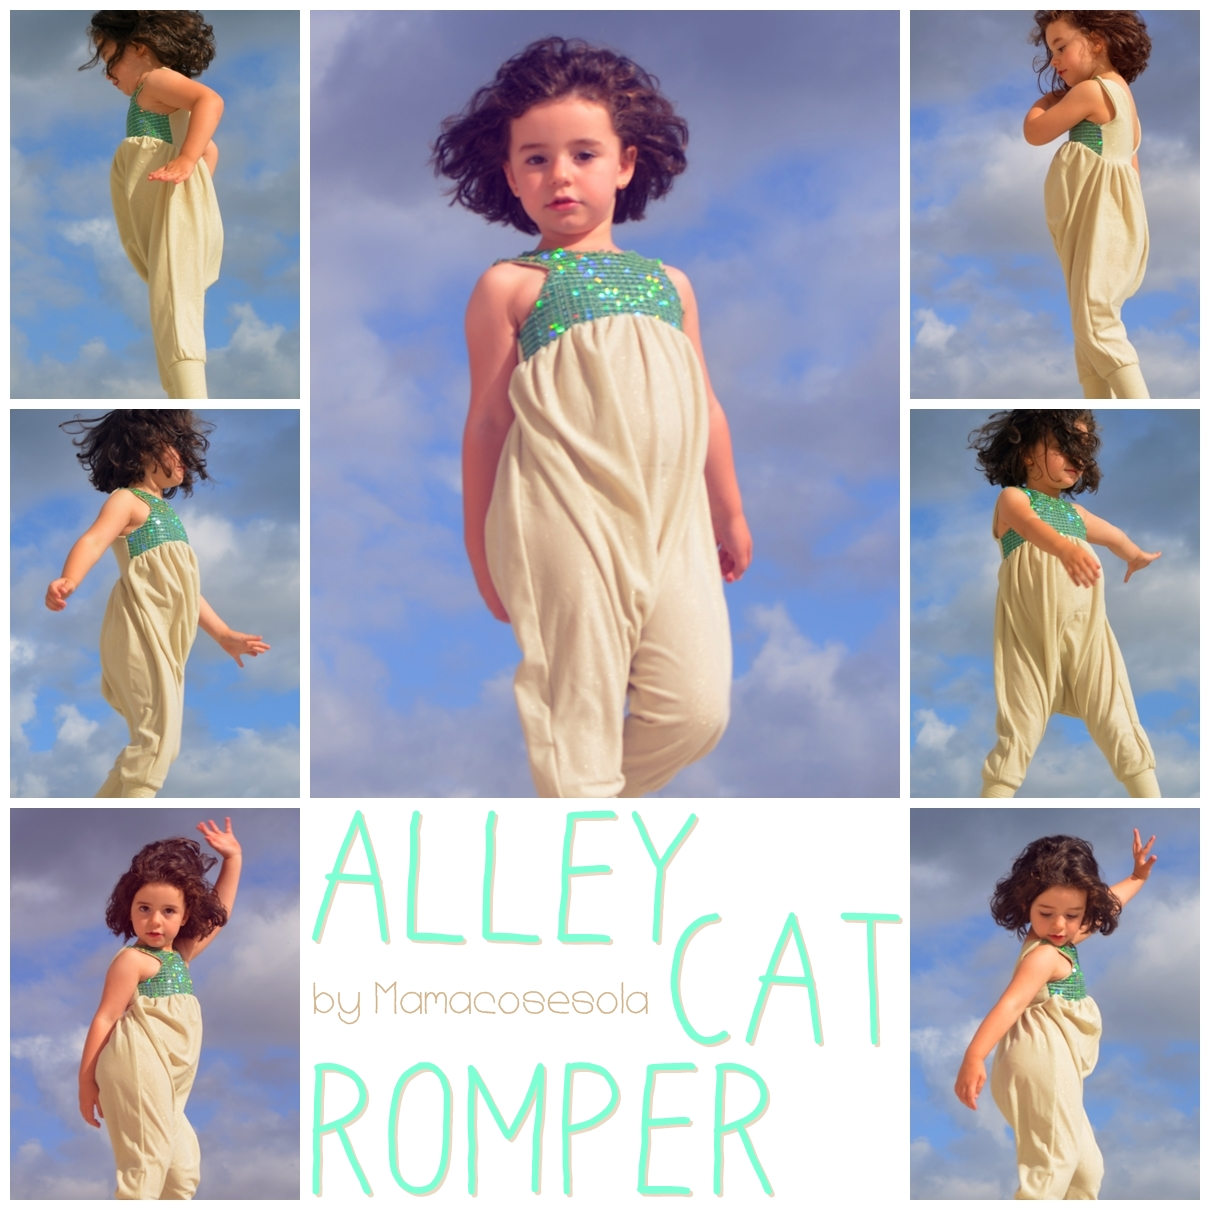 Collage ALLEY CAT ROMPER miniatura portada